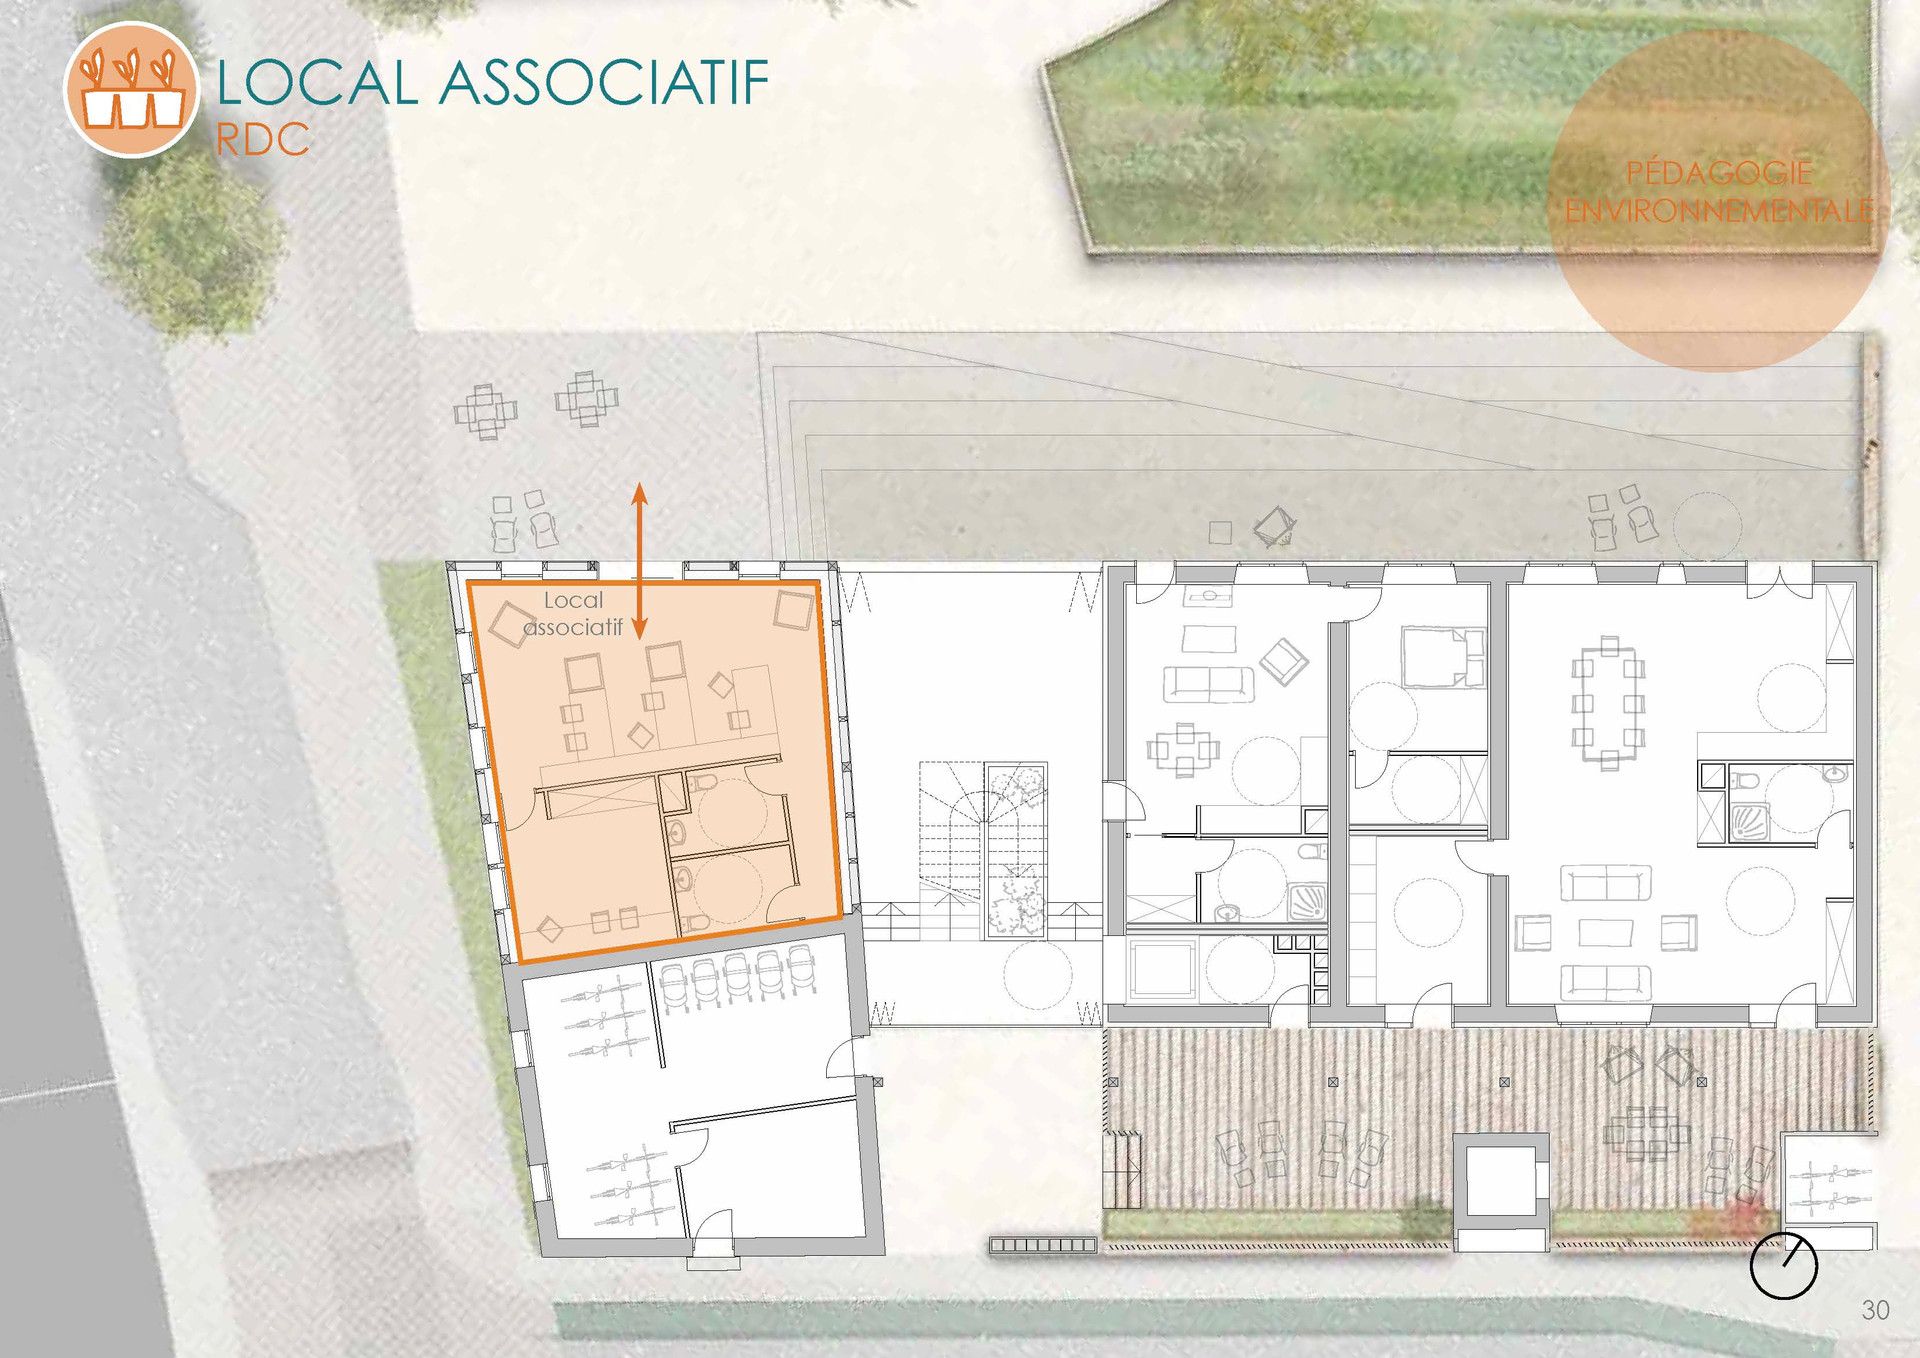 5_Local asso_plan_Page_030.jpg